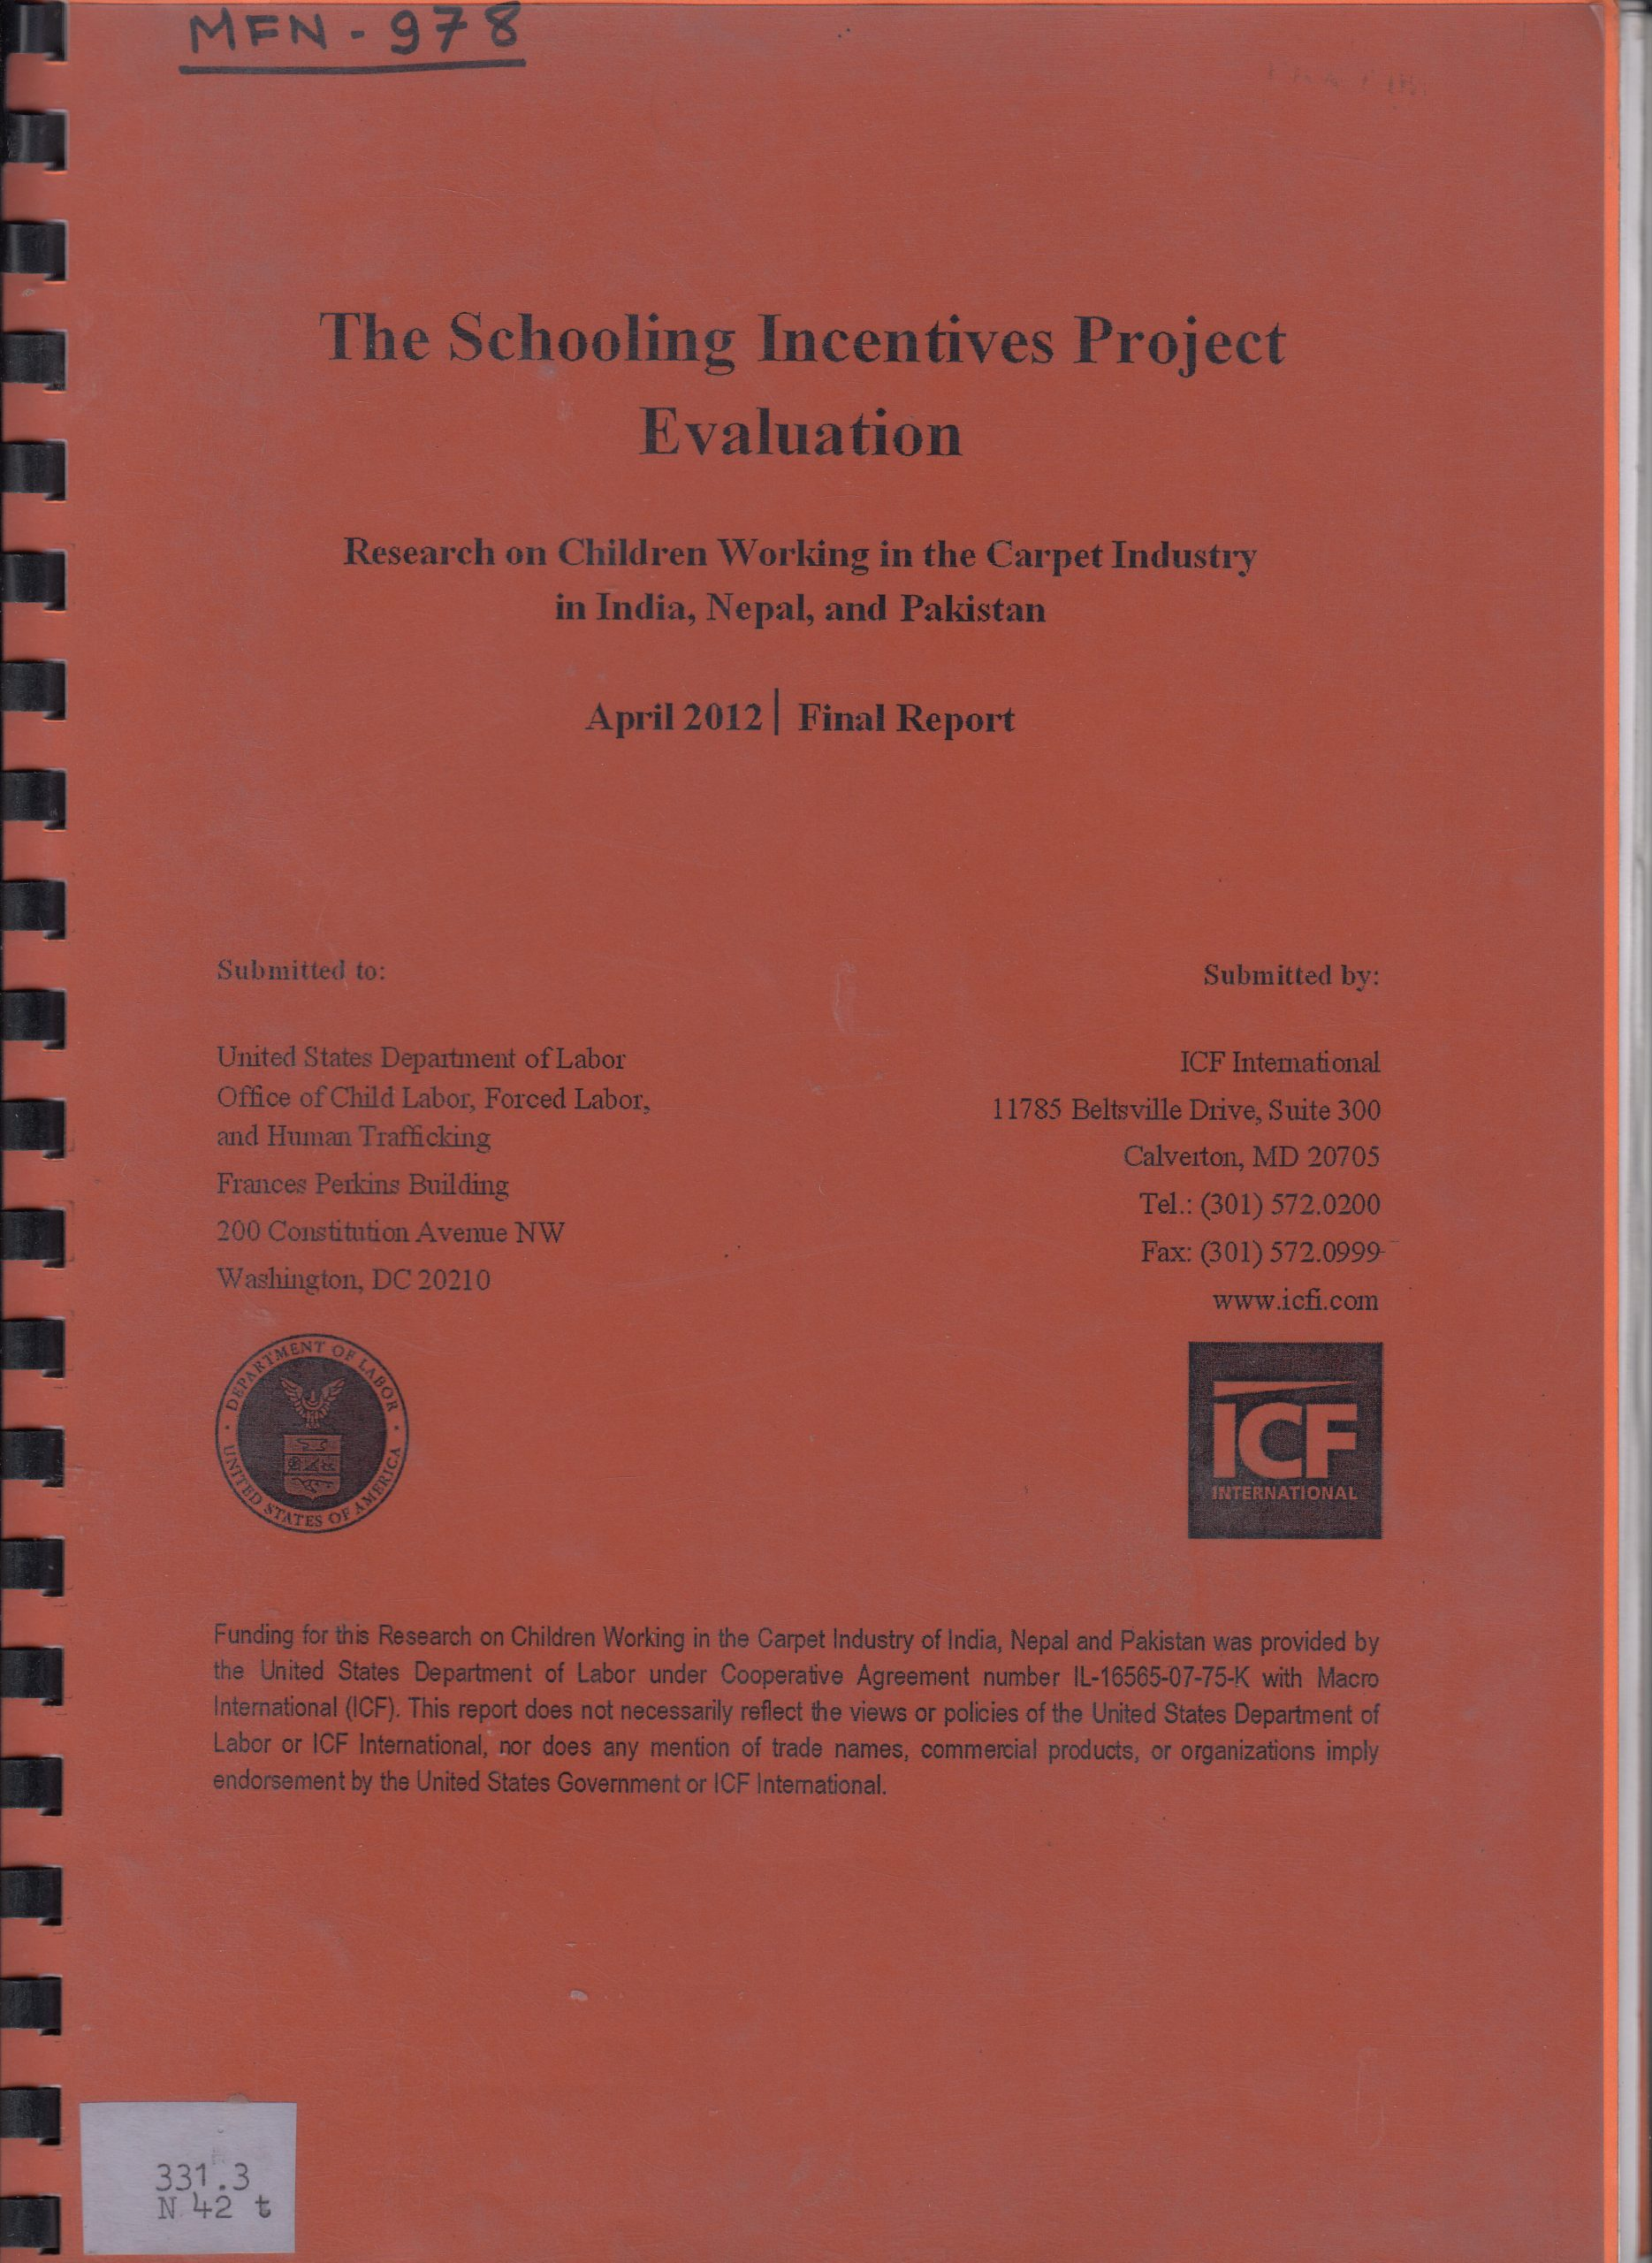 The Schooling Incentives Project Evaluation